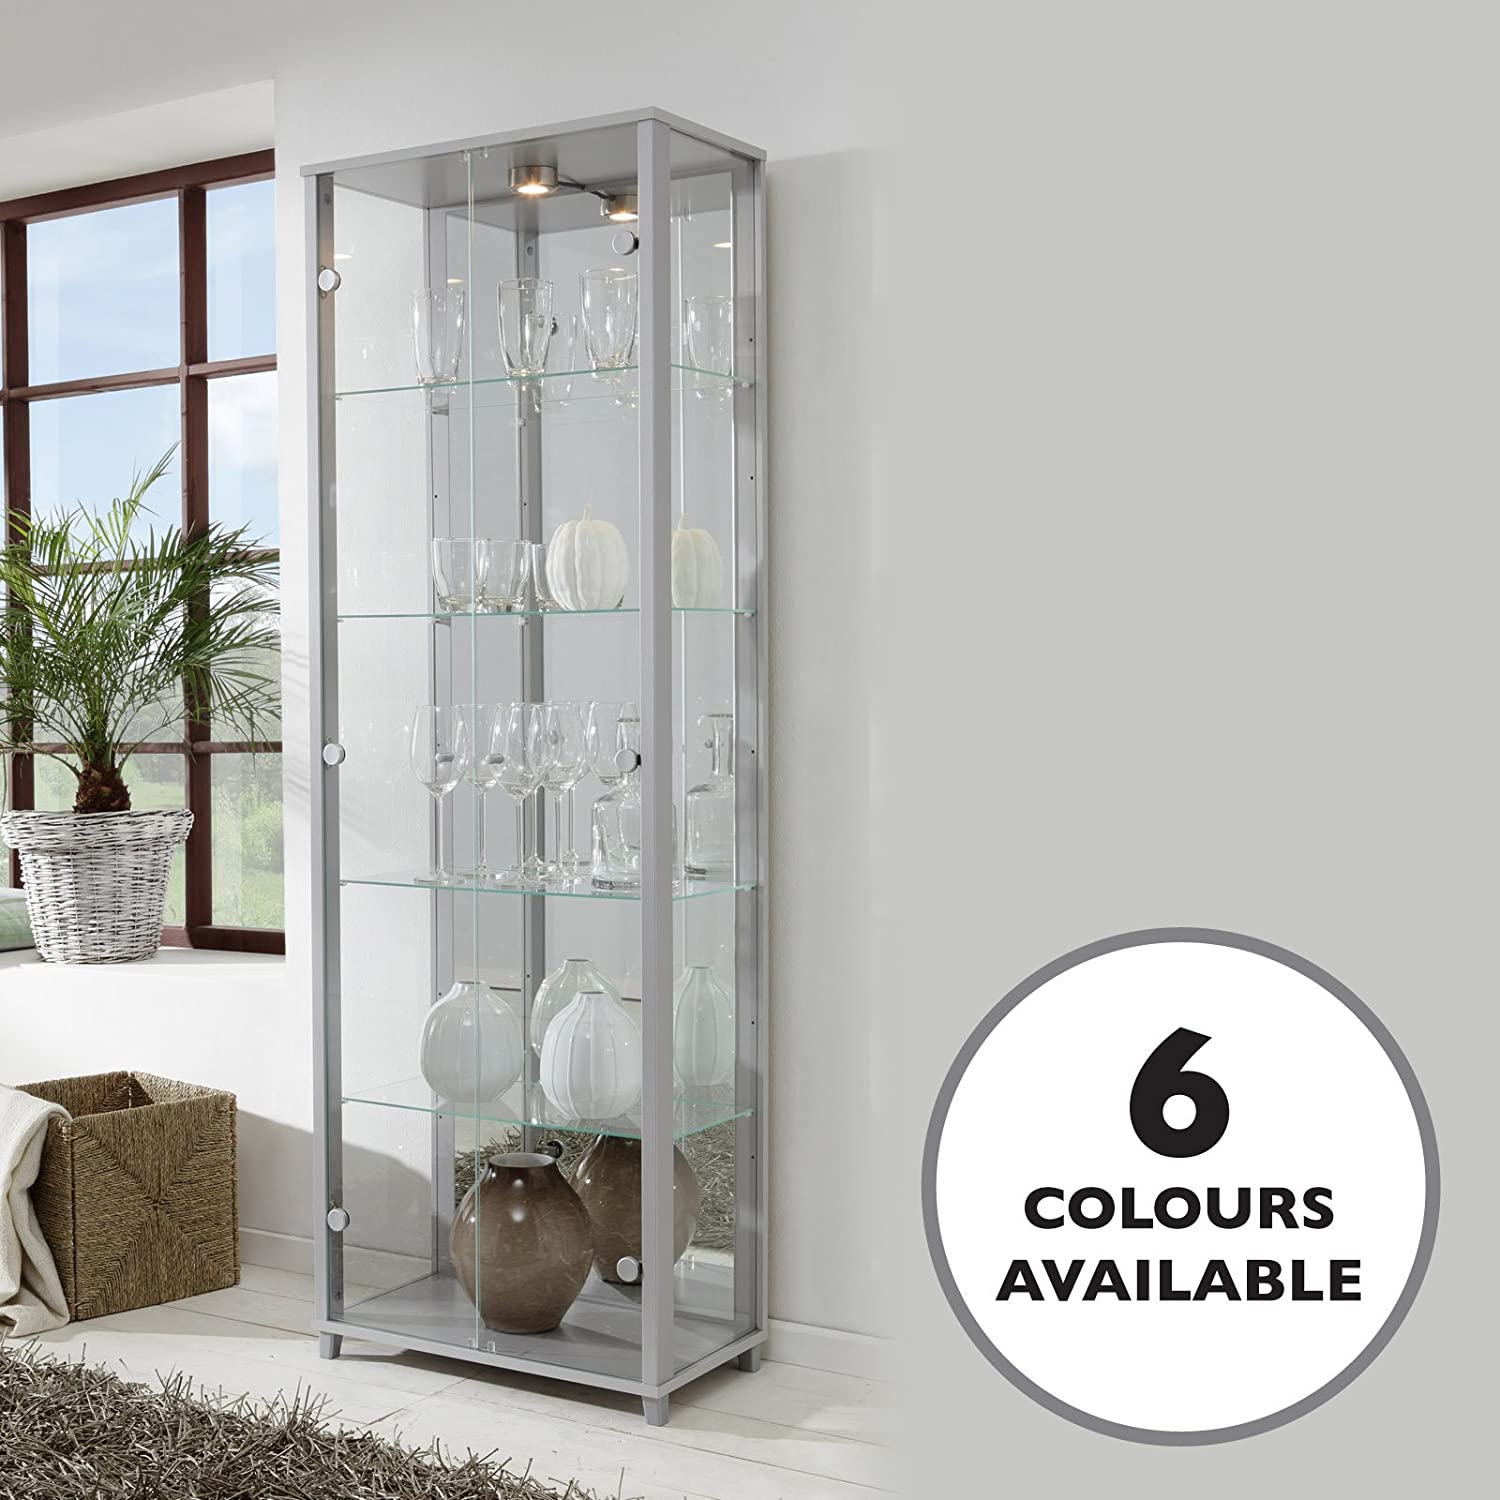 cabinets glass. home double glass display cabinet silver with 4 moveable shelves, spotlight, mirror back cabinets